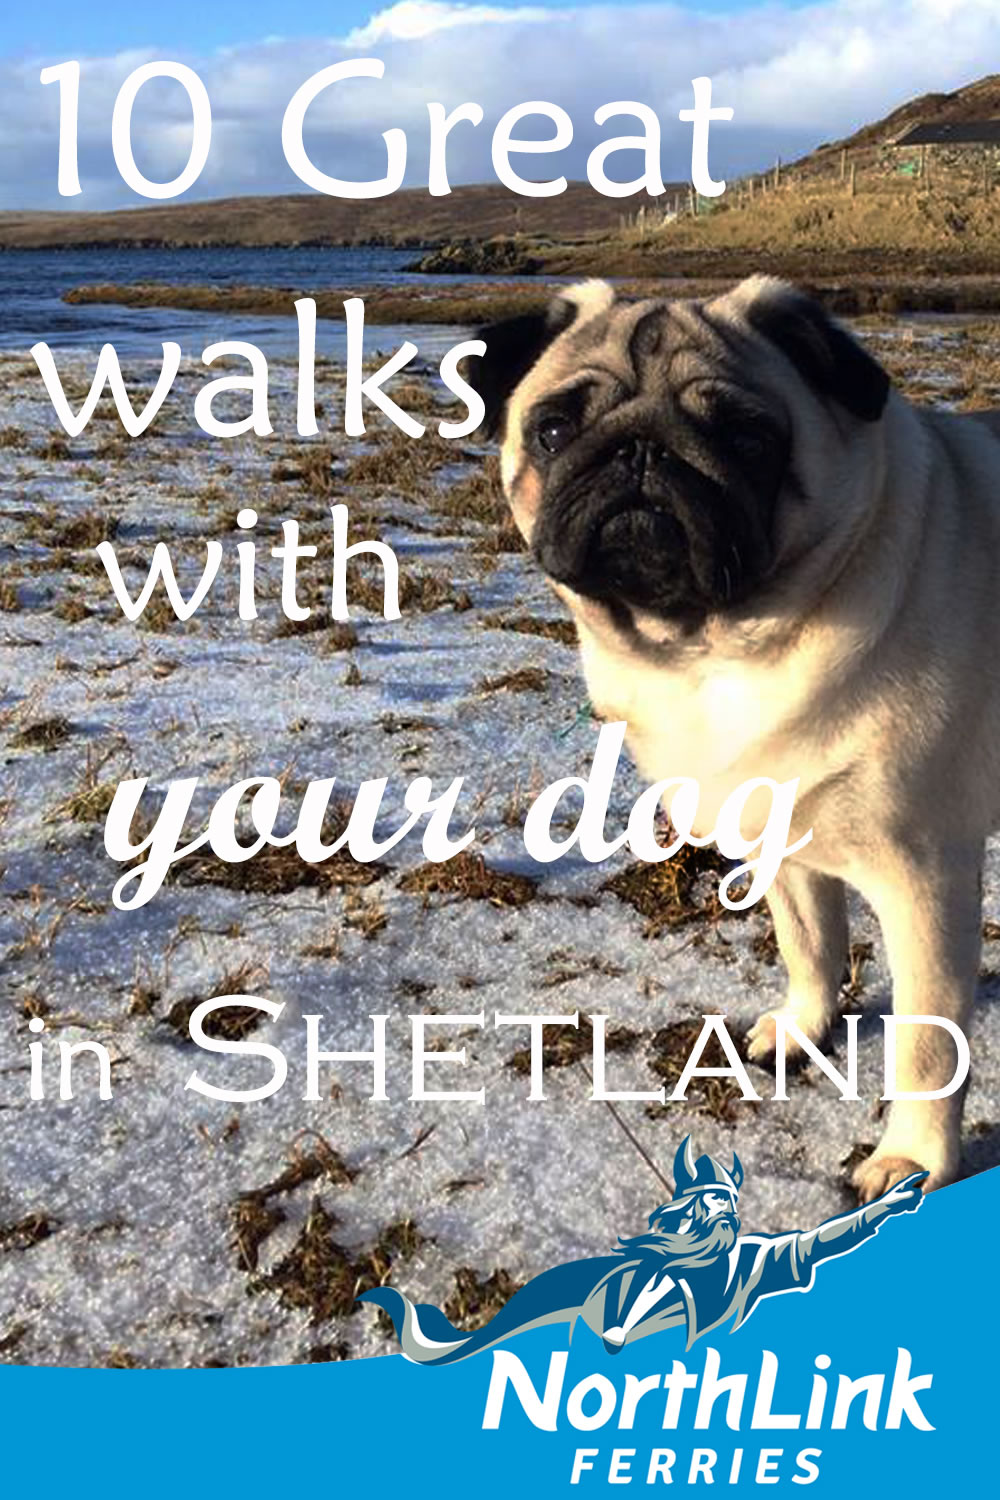 10 Great walks with your dog in Shetland